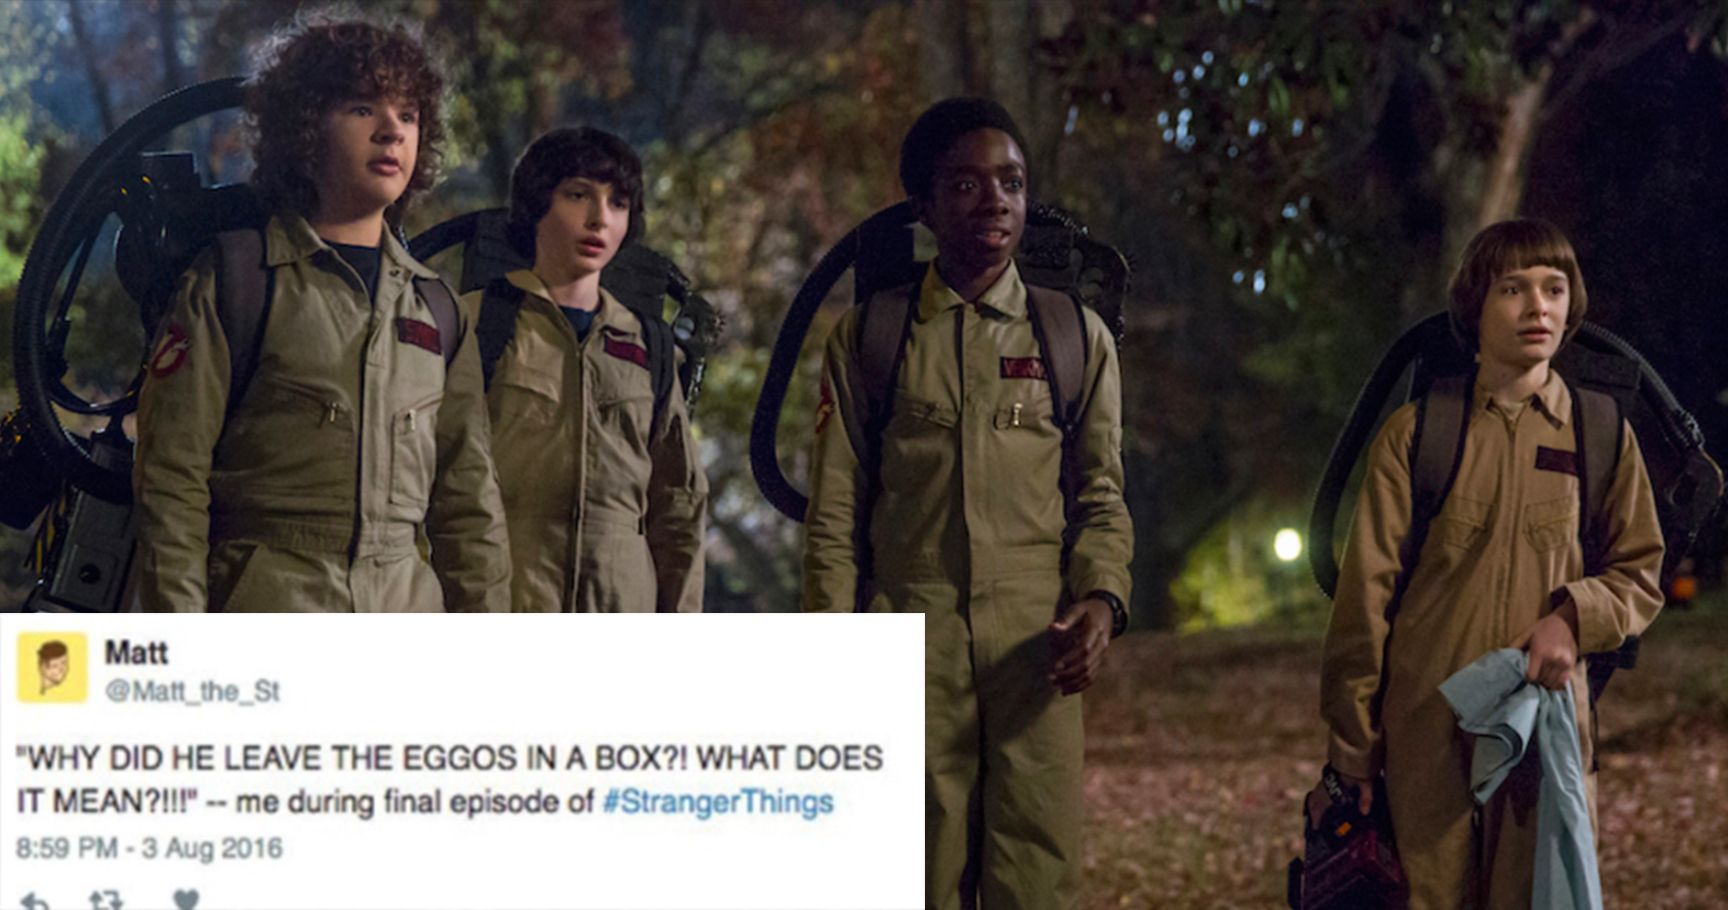 15 Burning Questions We Need Answered In Season 2 Of 'Stranger Things'